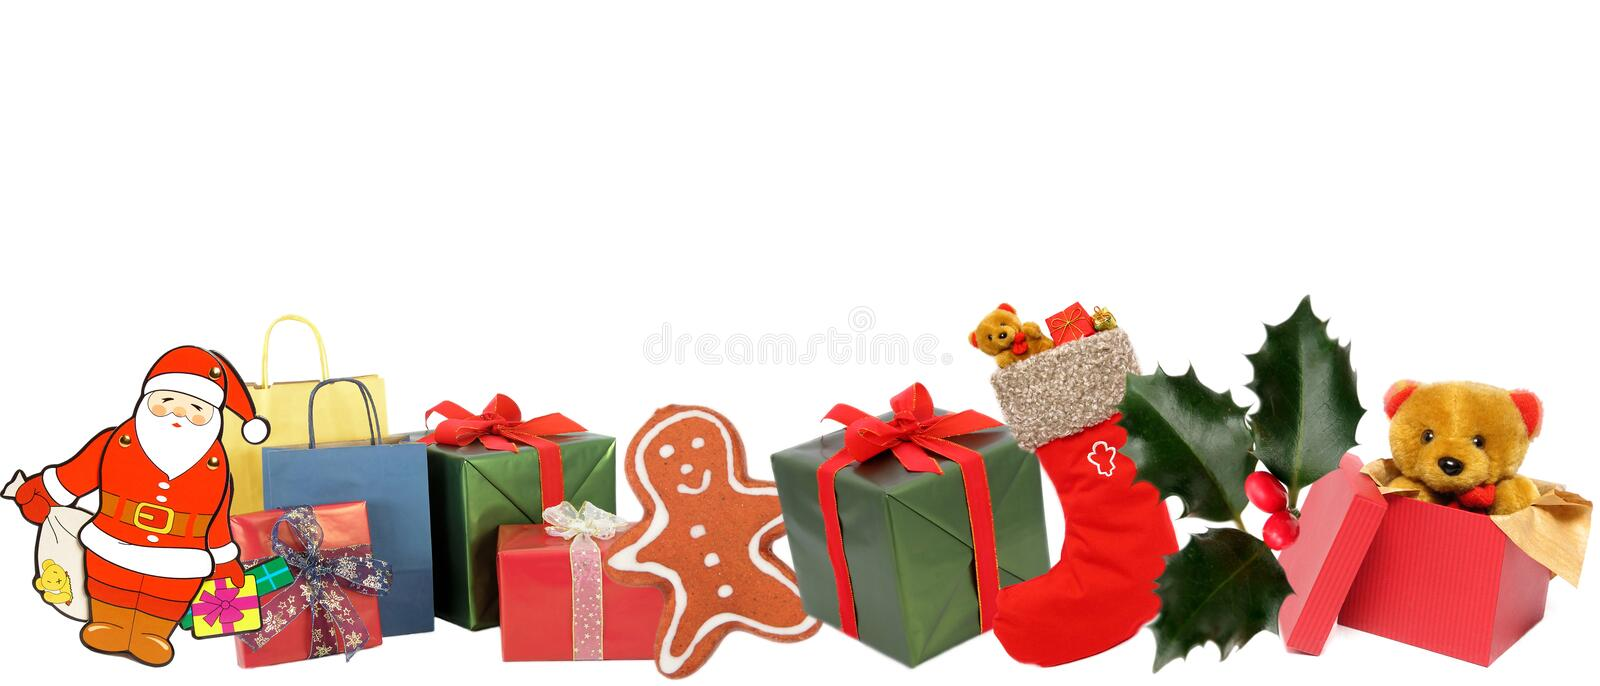 Christmas objects royalty free stock photos